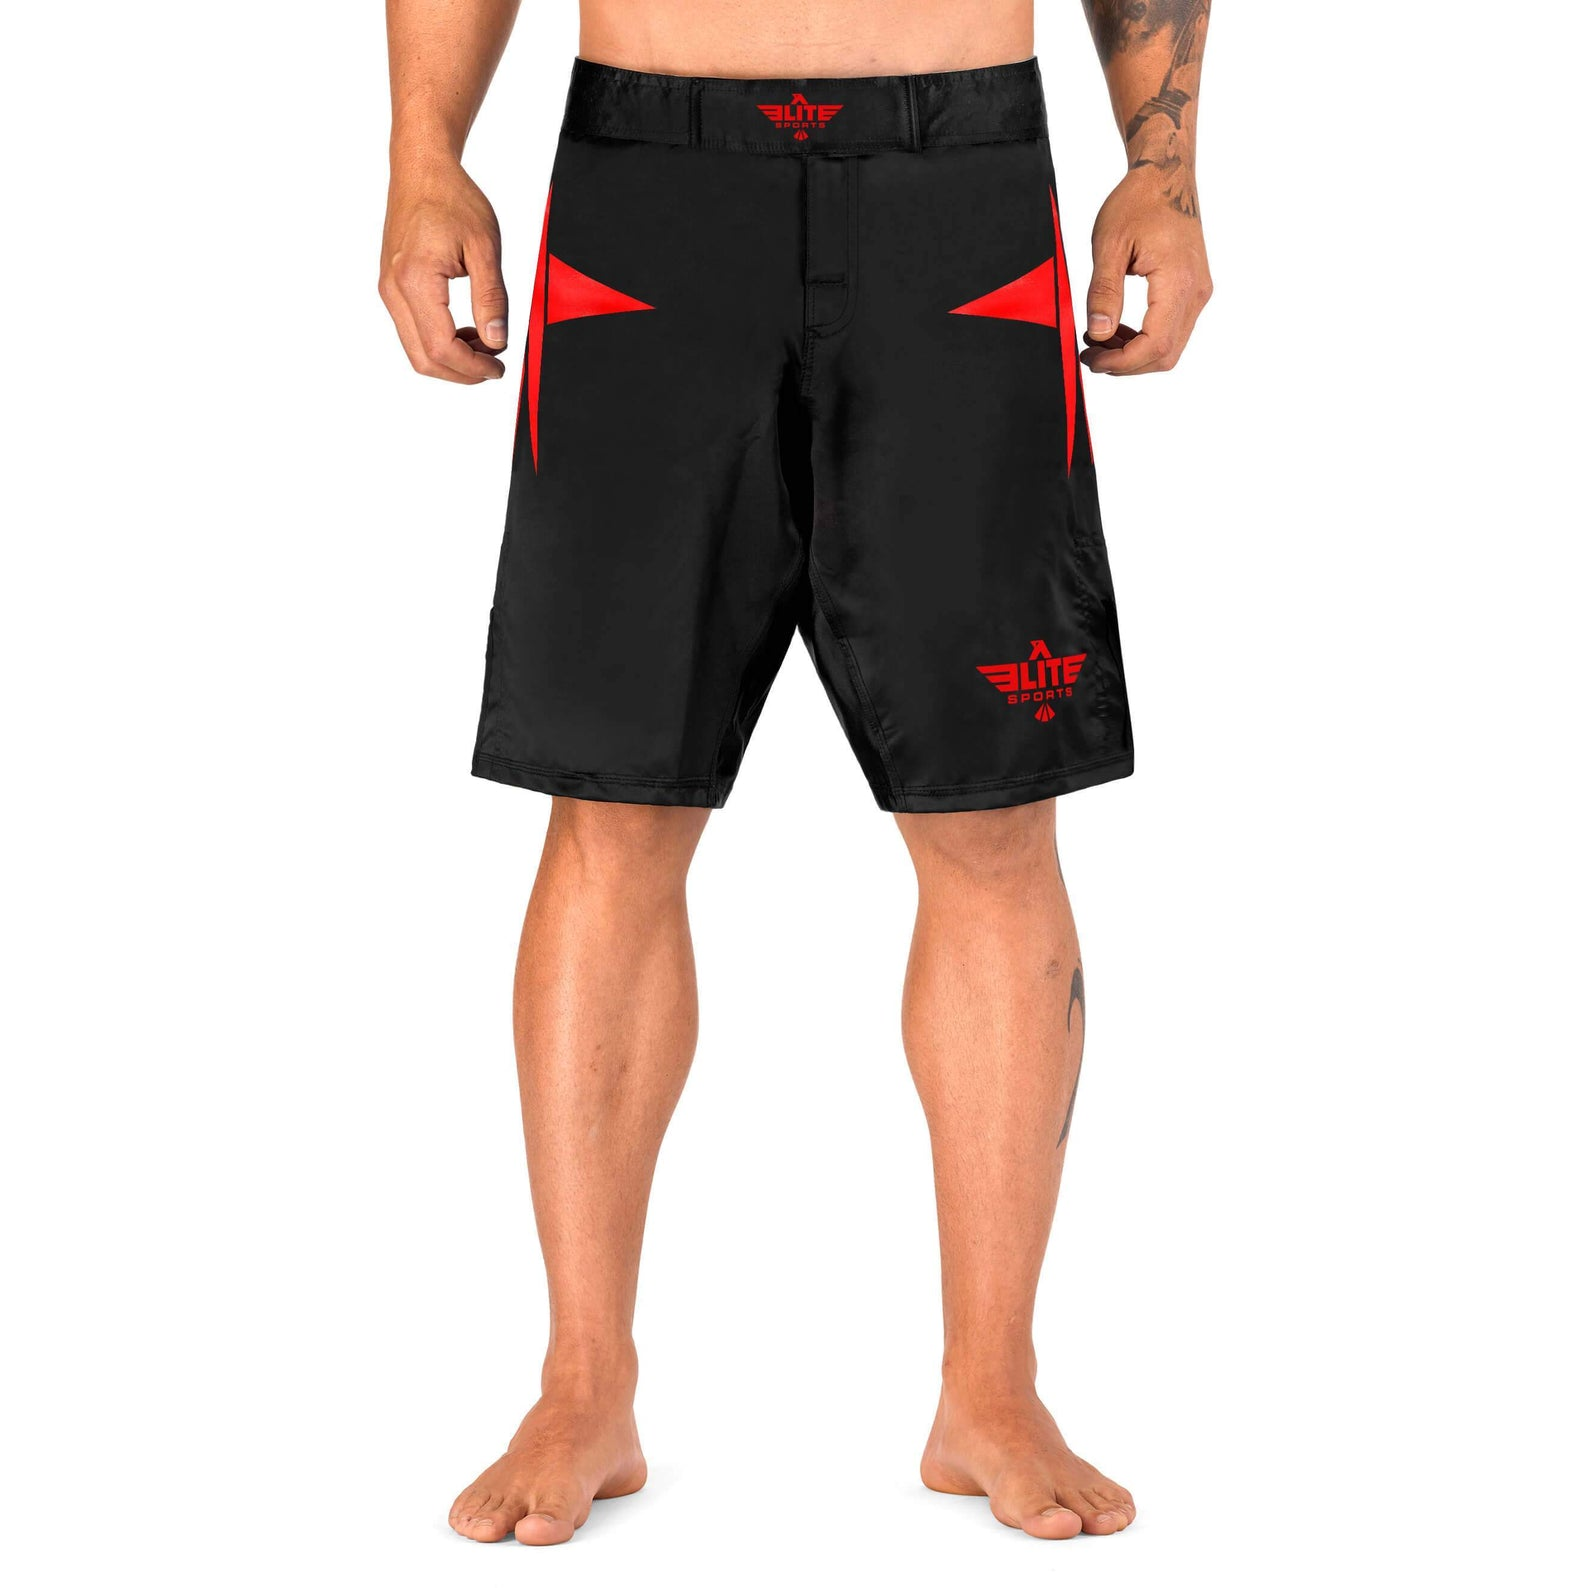 Elite Sports Star Series Sublimation Black/Red Wrestling Shorts